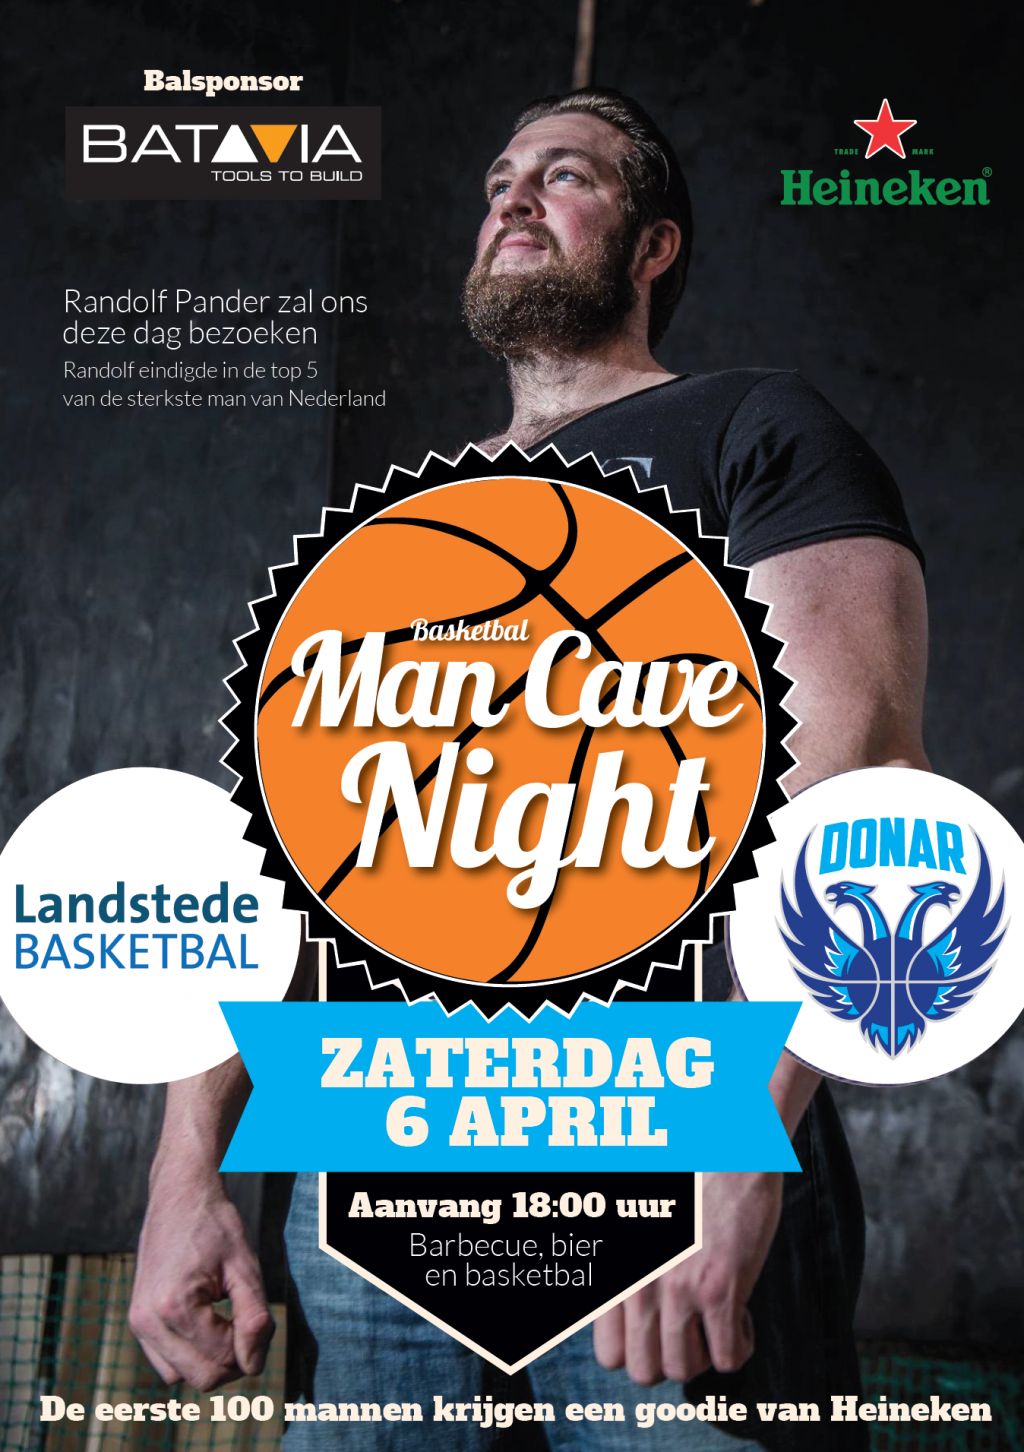 Mancave Night Landstede Basketbal 6 april